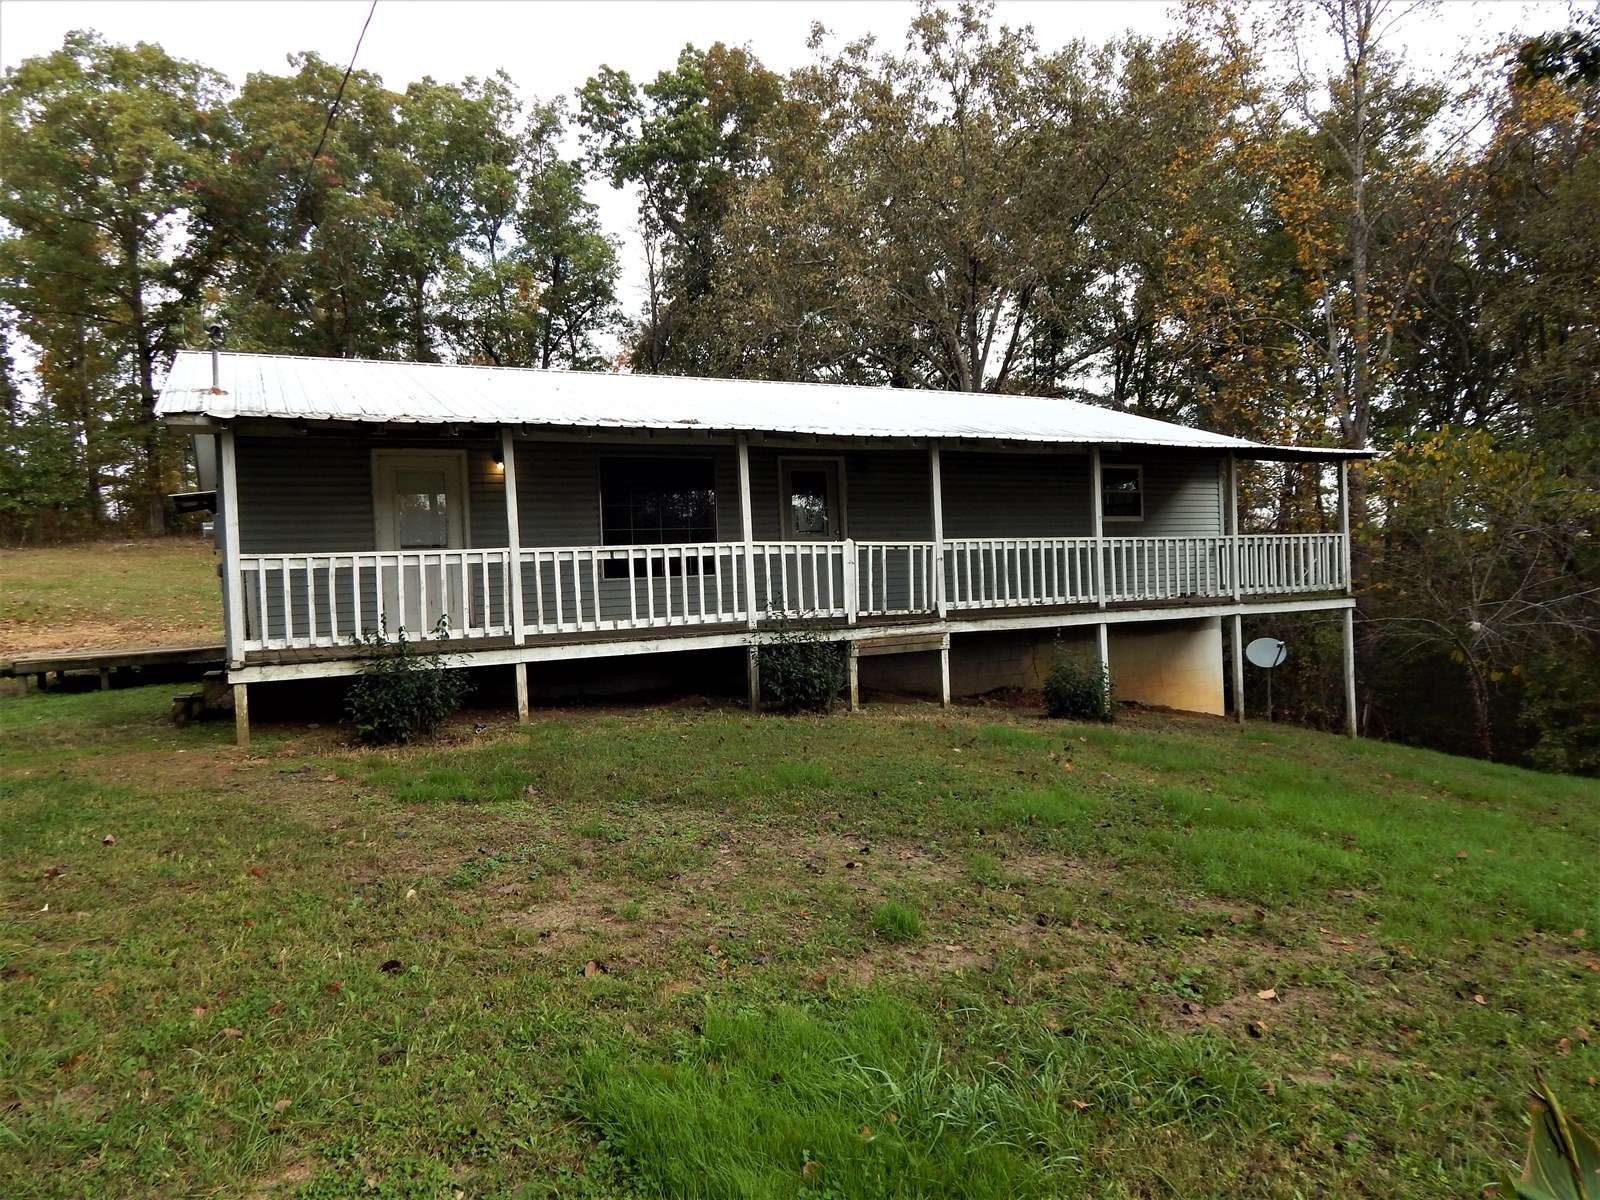 Ranch Style Tn Country Home 3 Bed 1 Bath on 1.08 Acre!